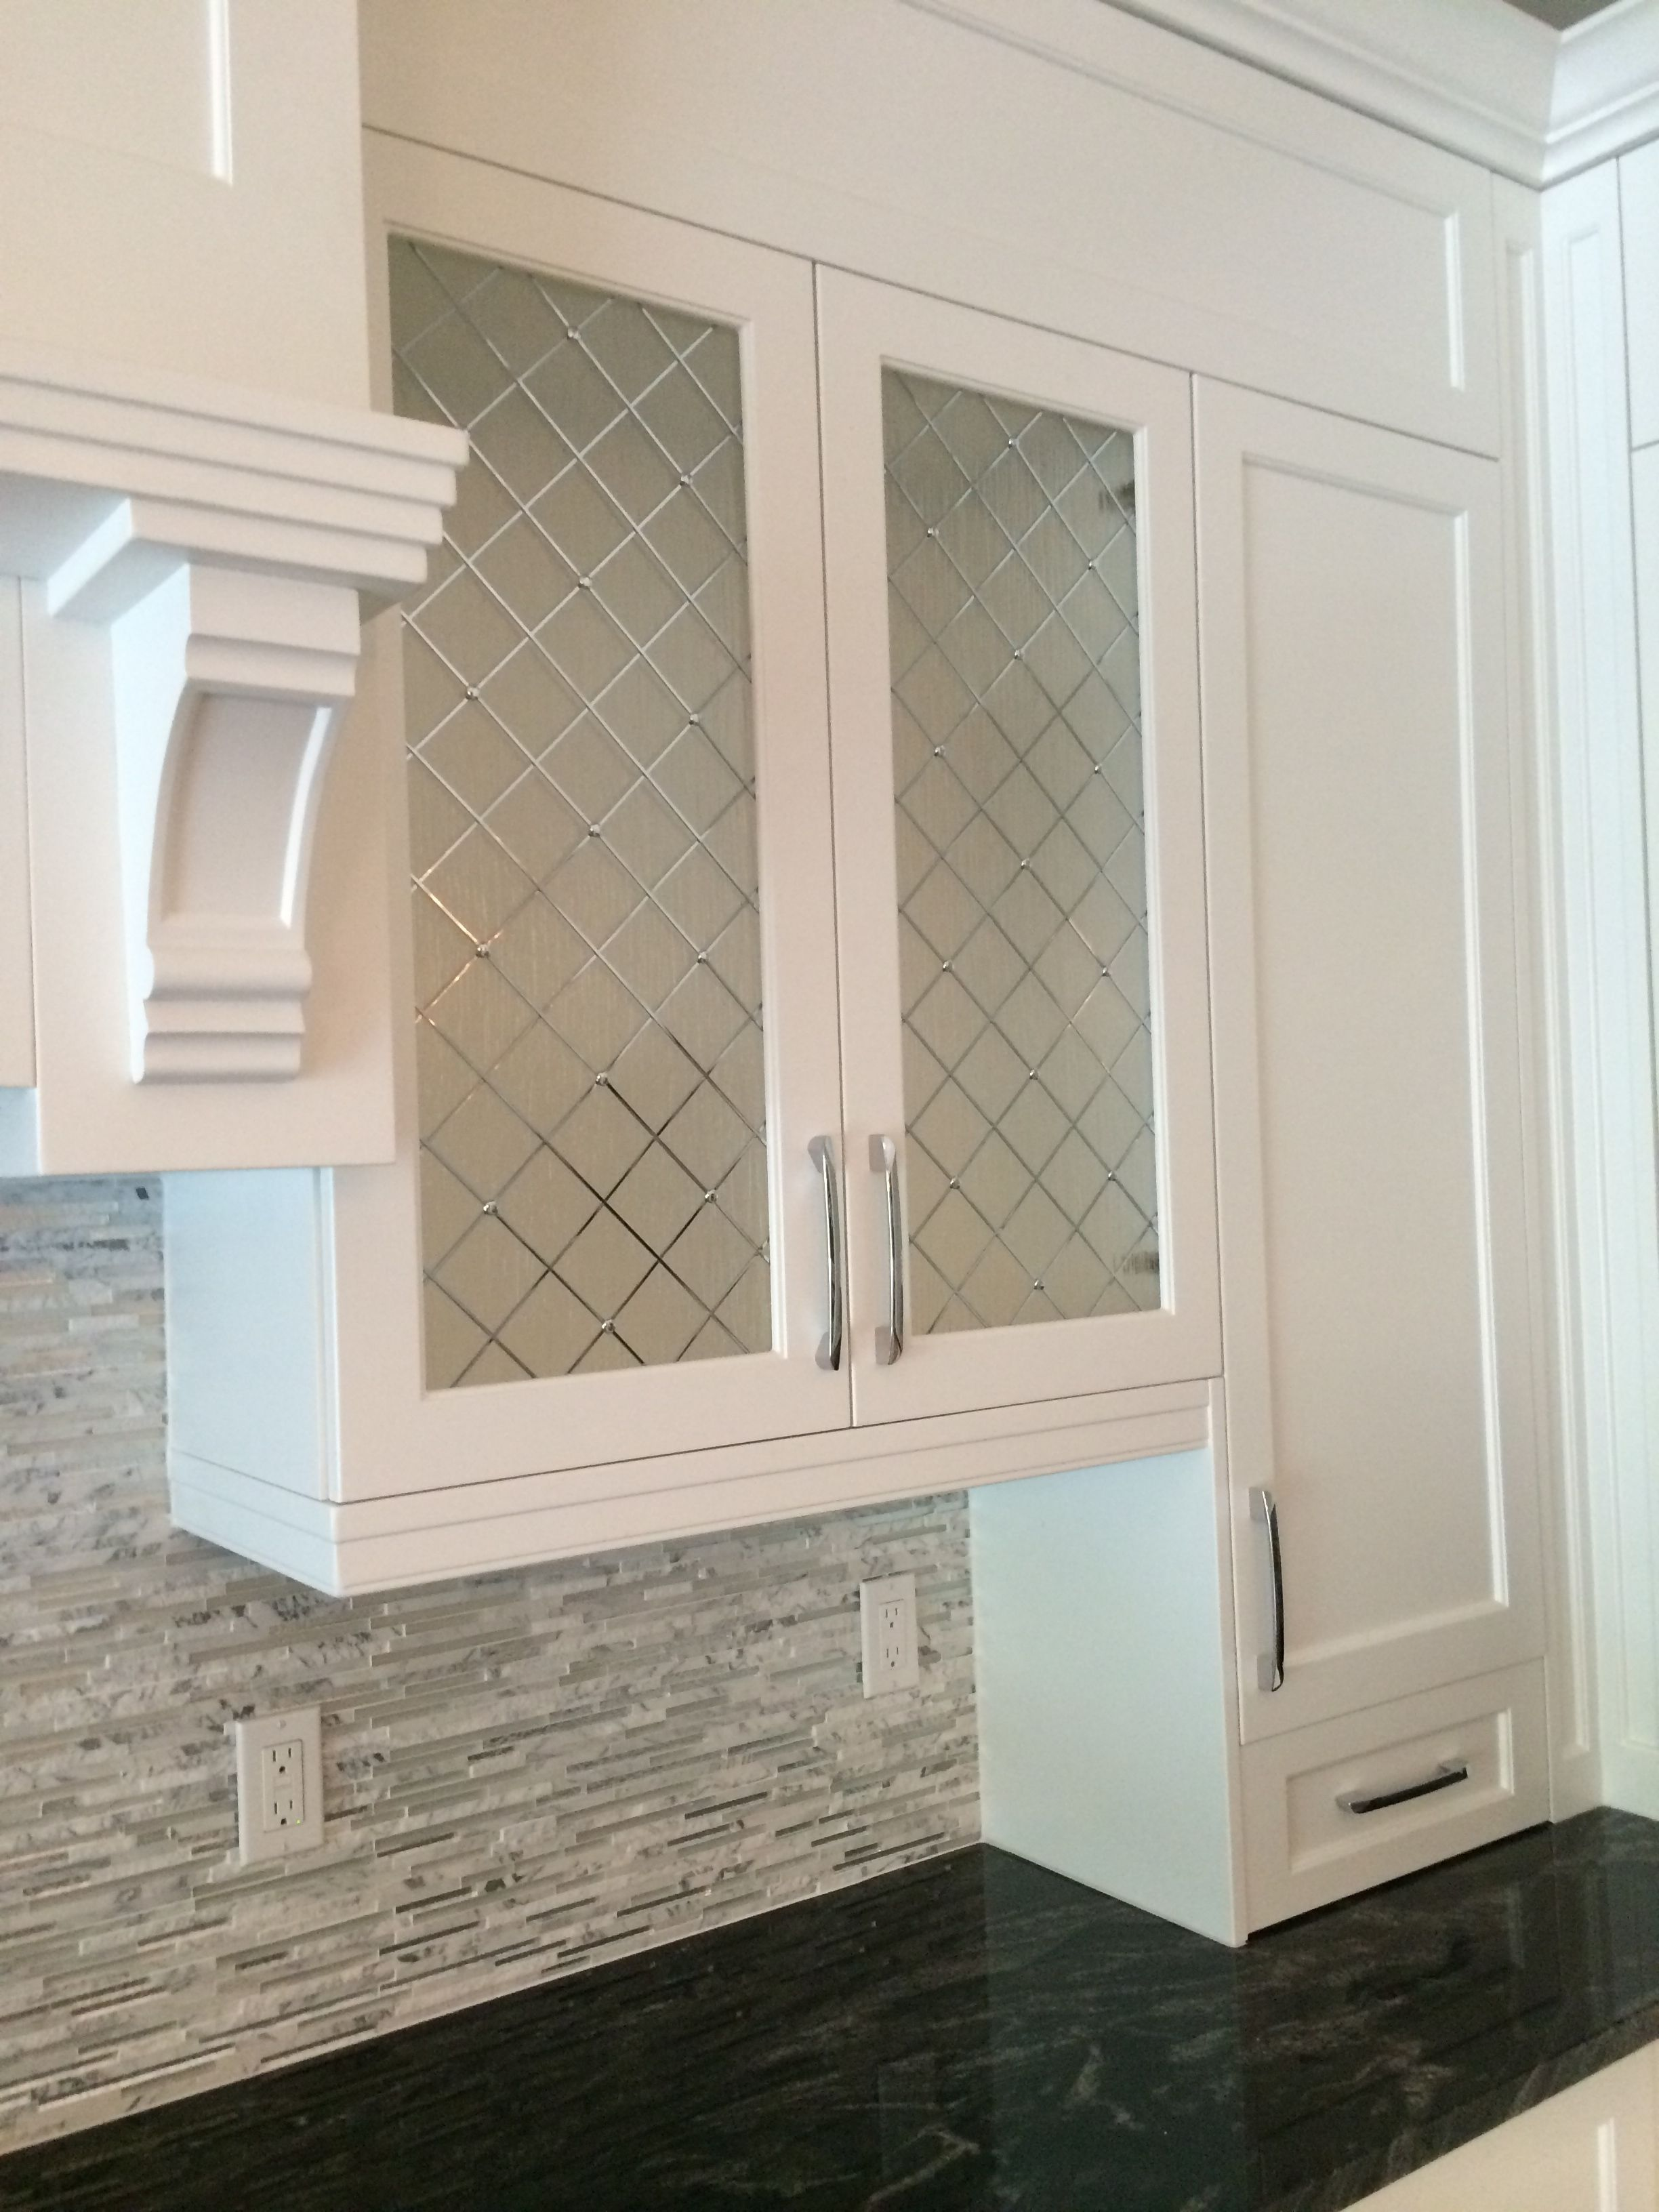 Snowflake Granite Decorative Cabinet Glass | Patterend Glass In 2019 | Glass